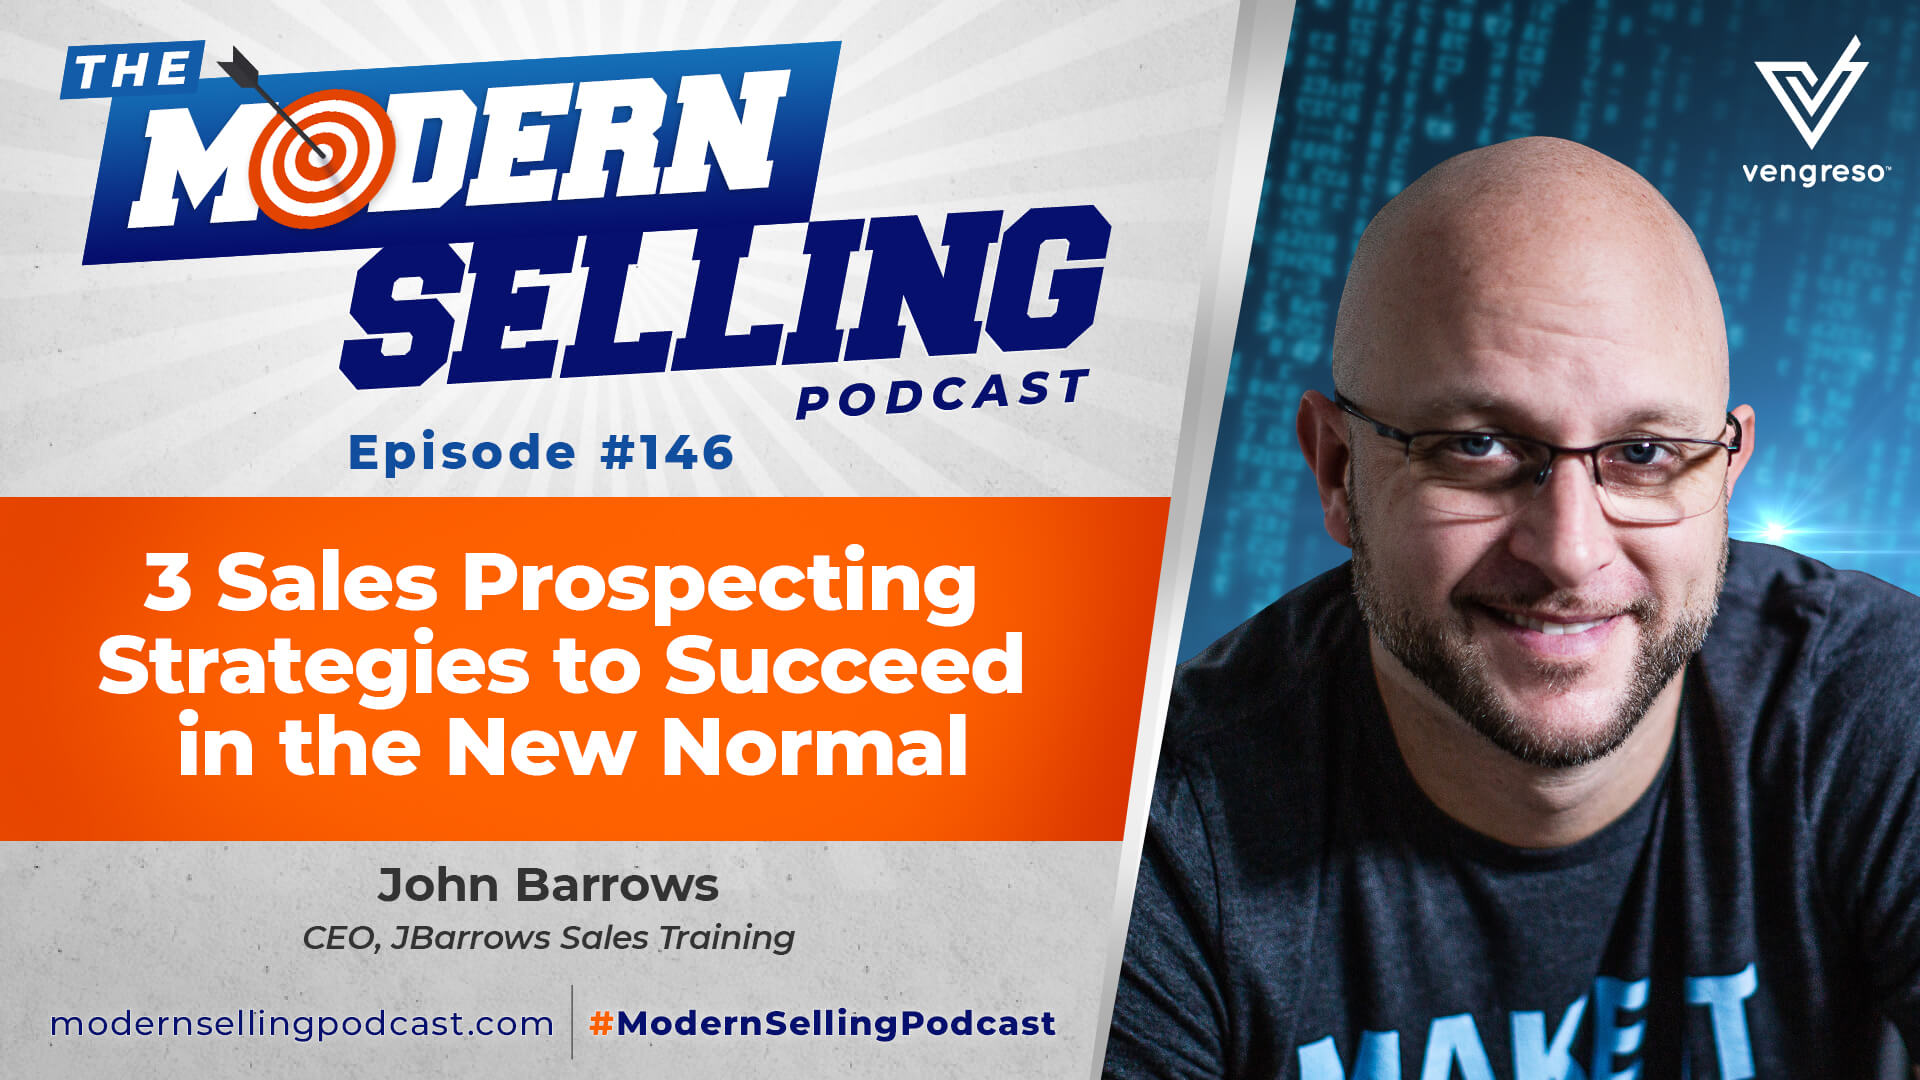 Prospecting Strategies to Succeed in the New Normal, with John Barrows